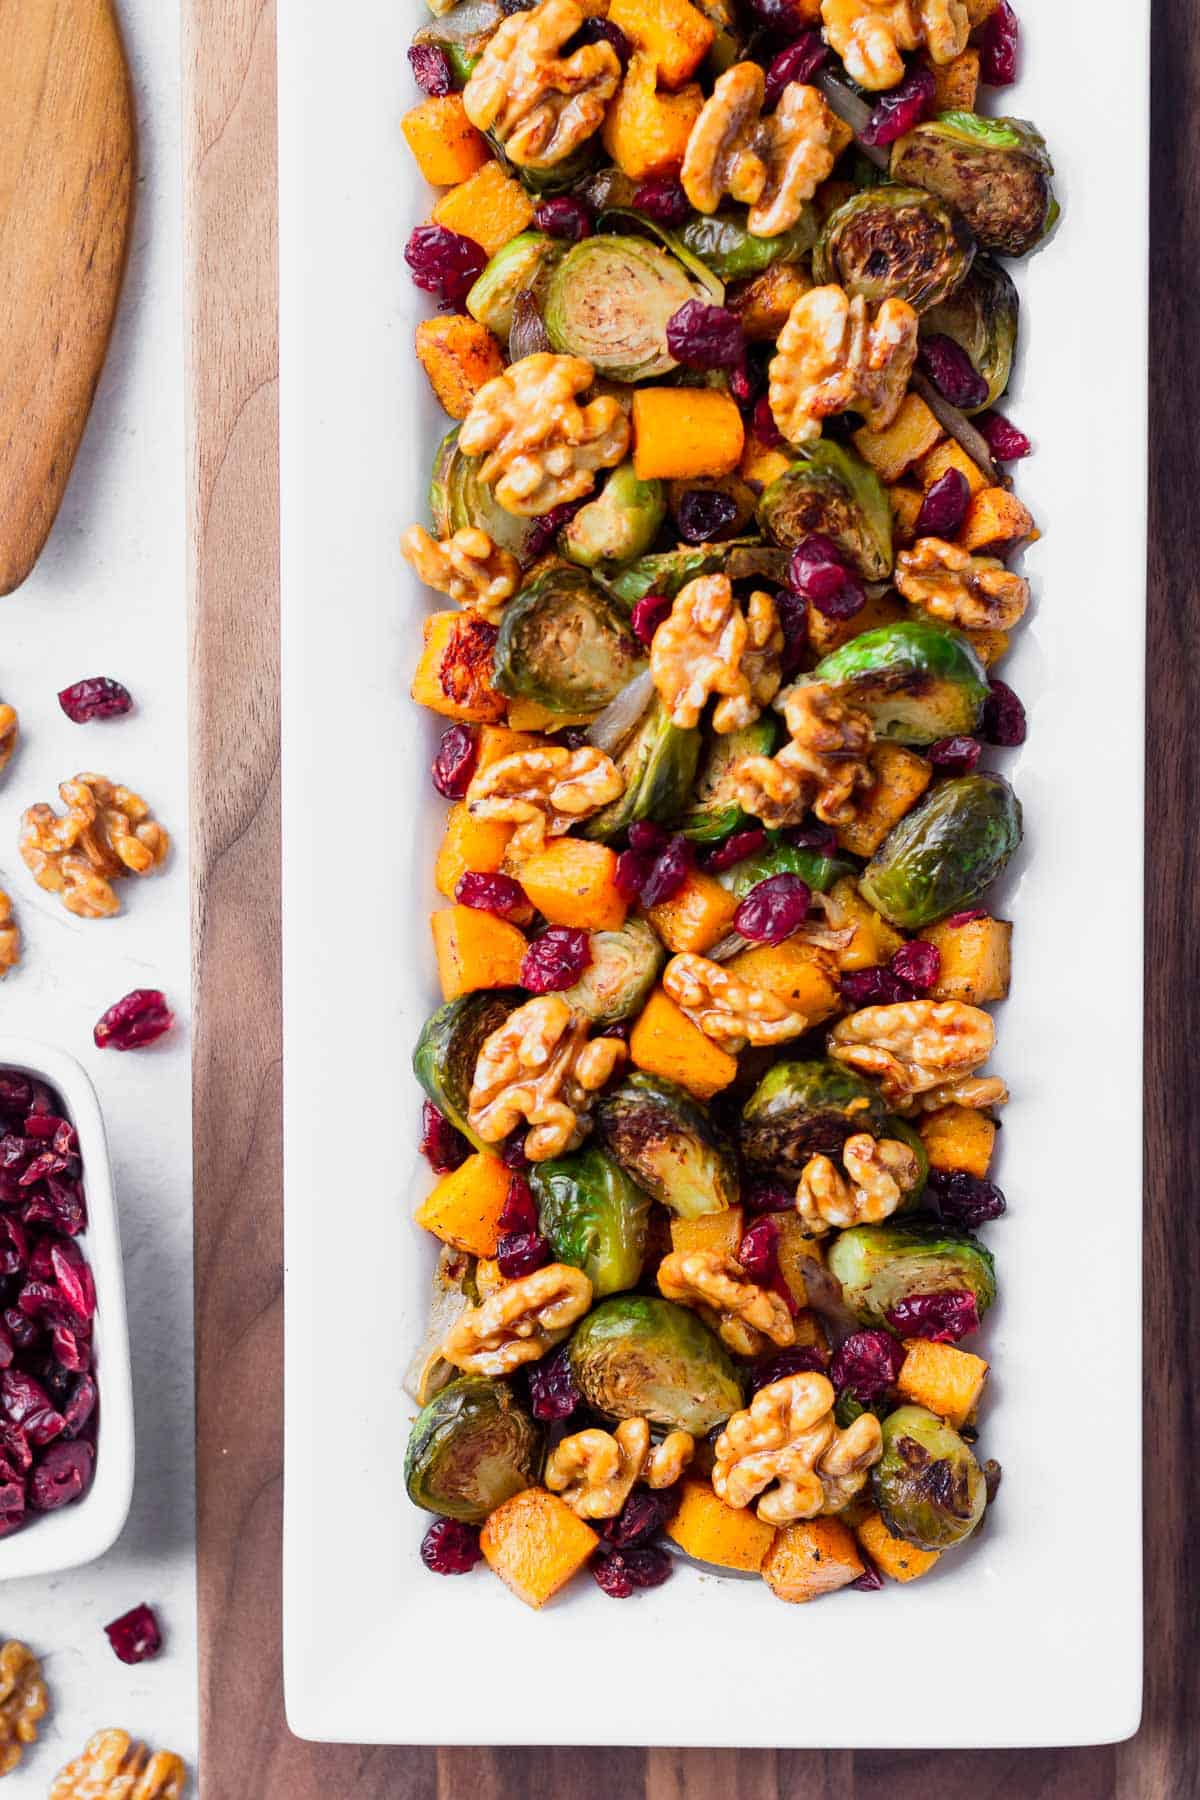 Overhead of roasted fall vegetables including butternut squash, brussels sprouts, cranberries and walnut on a rectangular white plate over a white board with extra cranberries and walnuts on the side